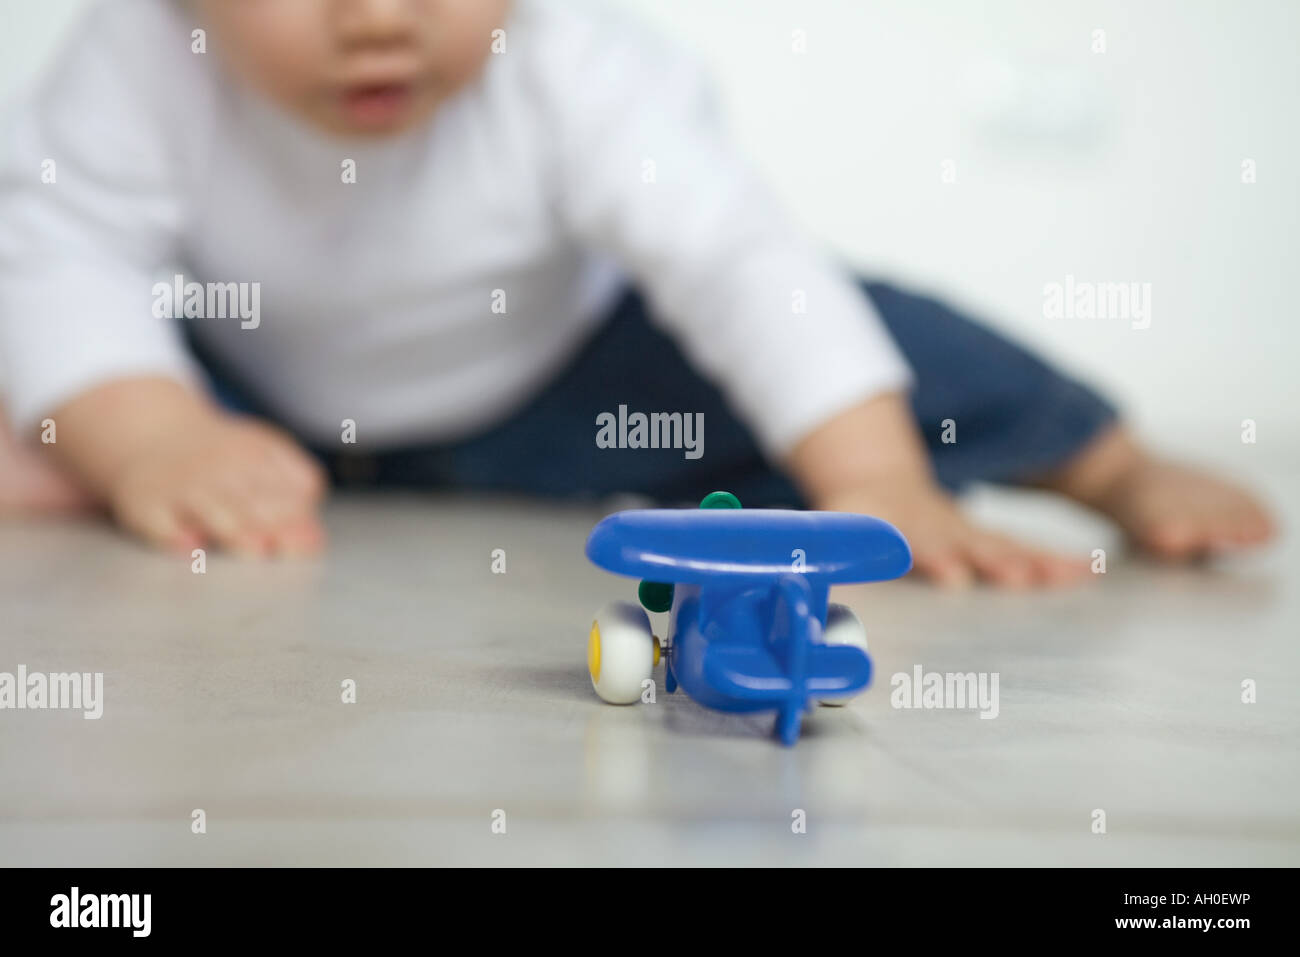 Toy airplane on floor, baby in background - Stock Image